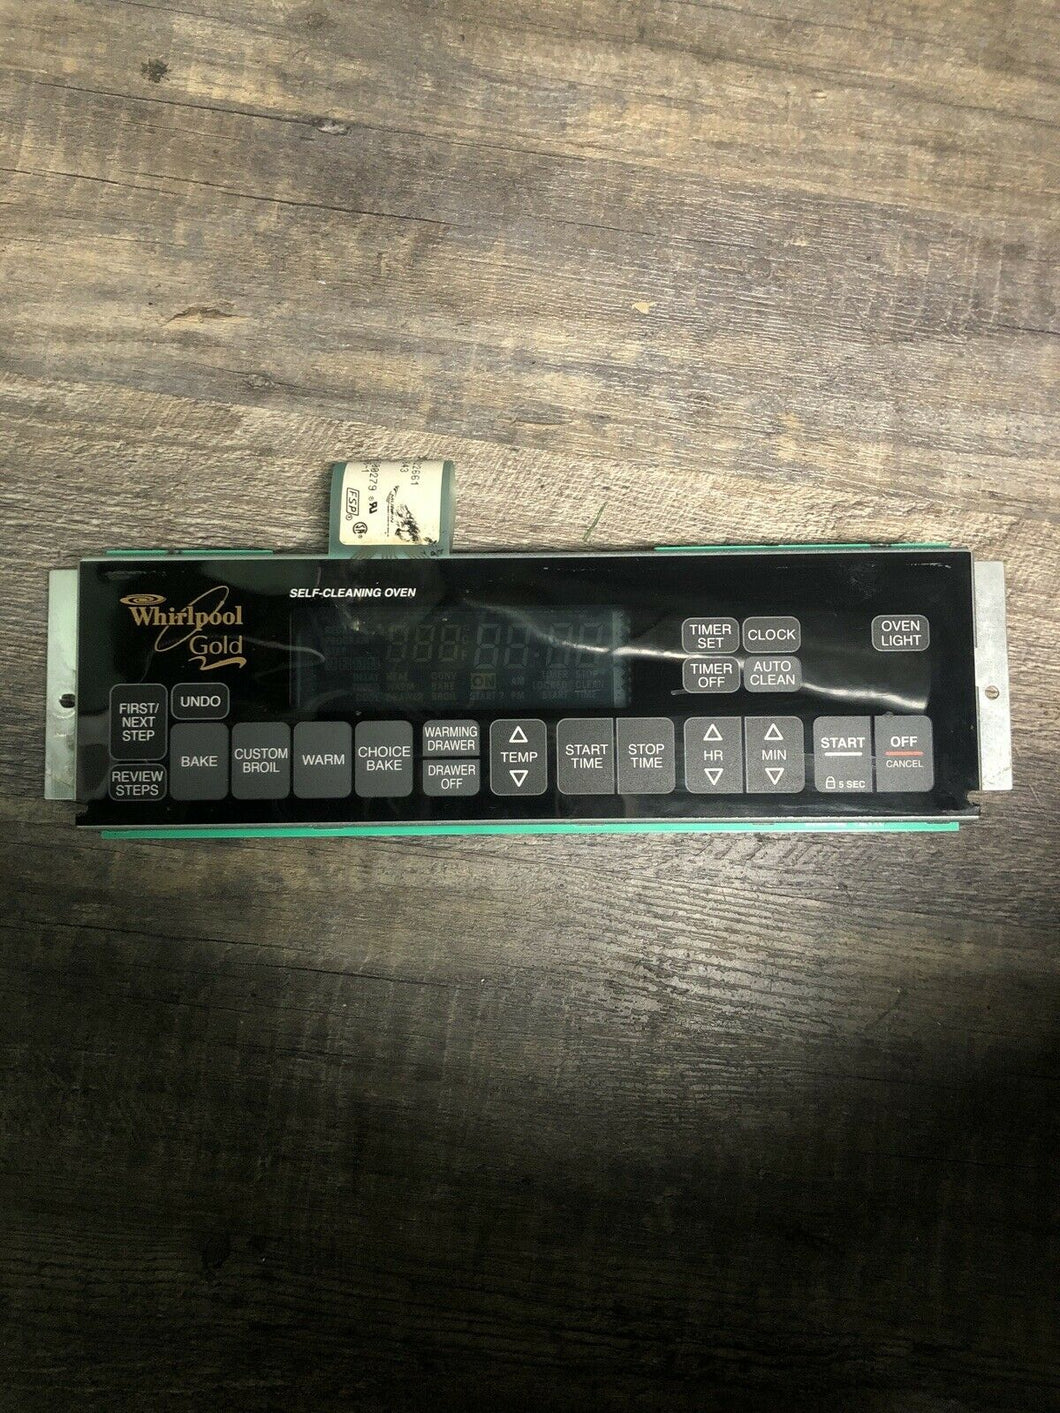 8522661 8523355 8522661 8523321 Range Control Black Display | AS Box 135